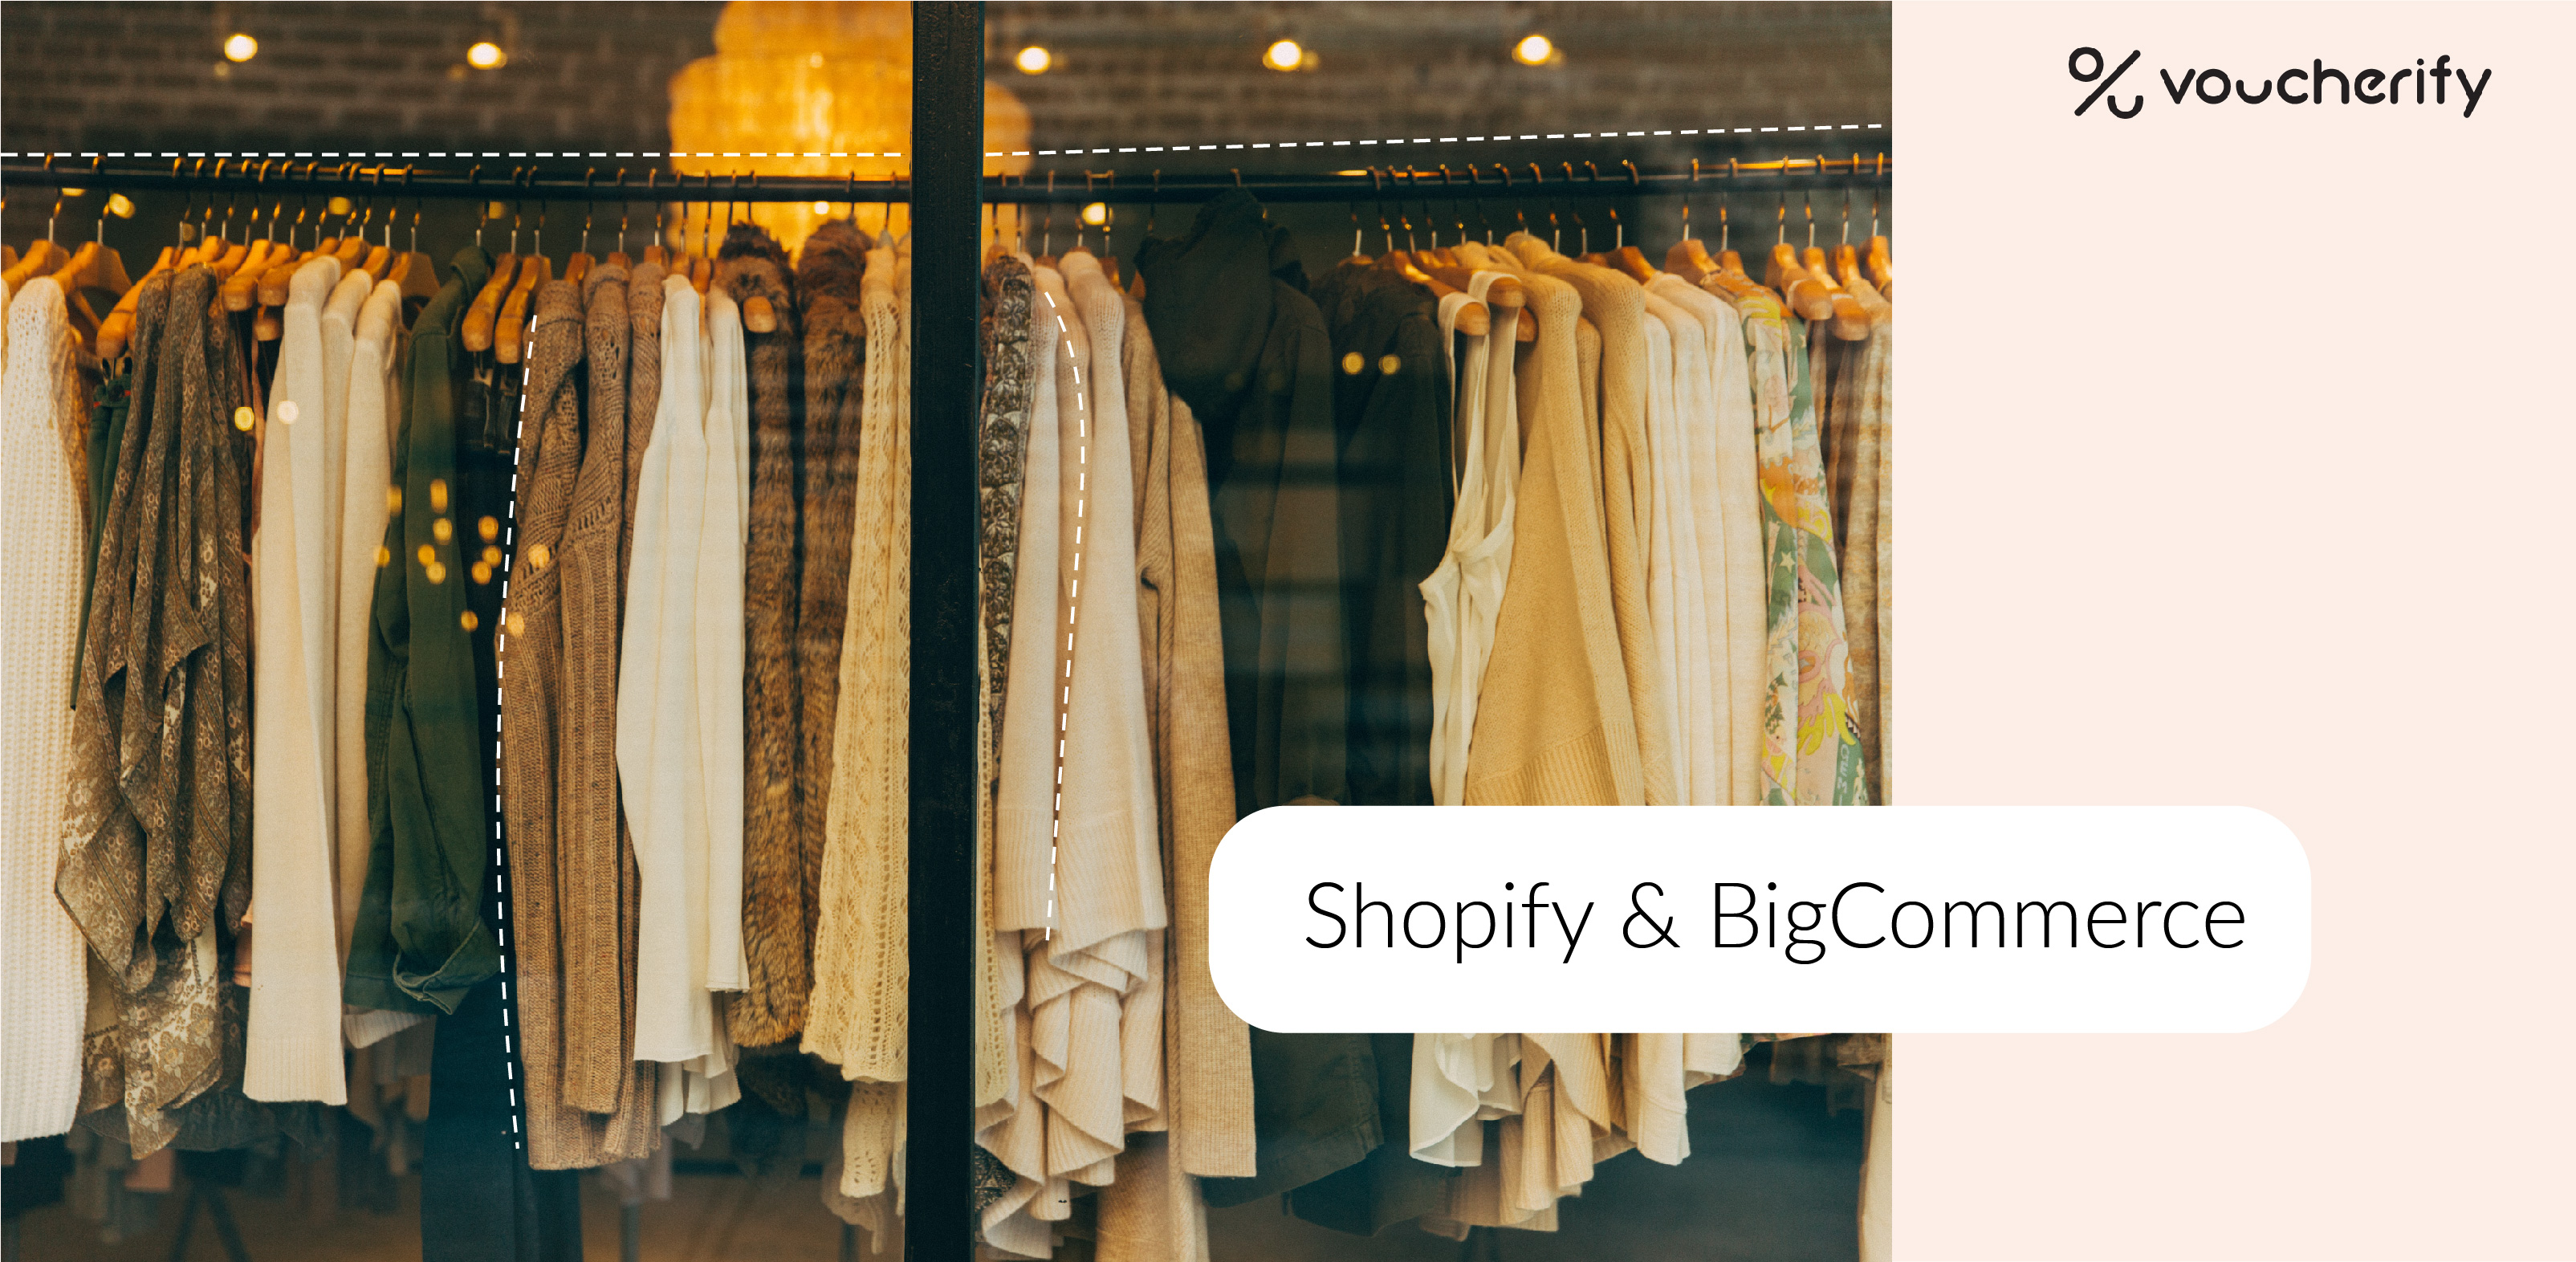 Enterprise-grade discount promotions with Shopify and BigCommerce